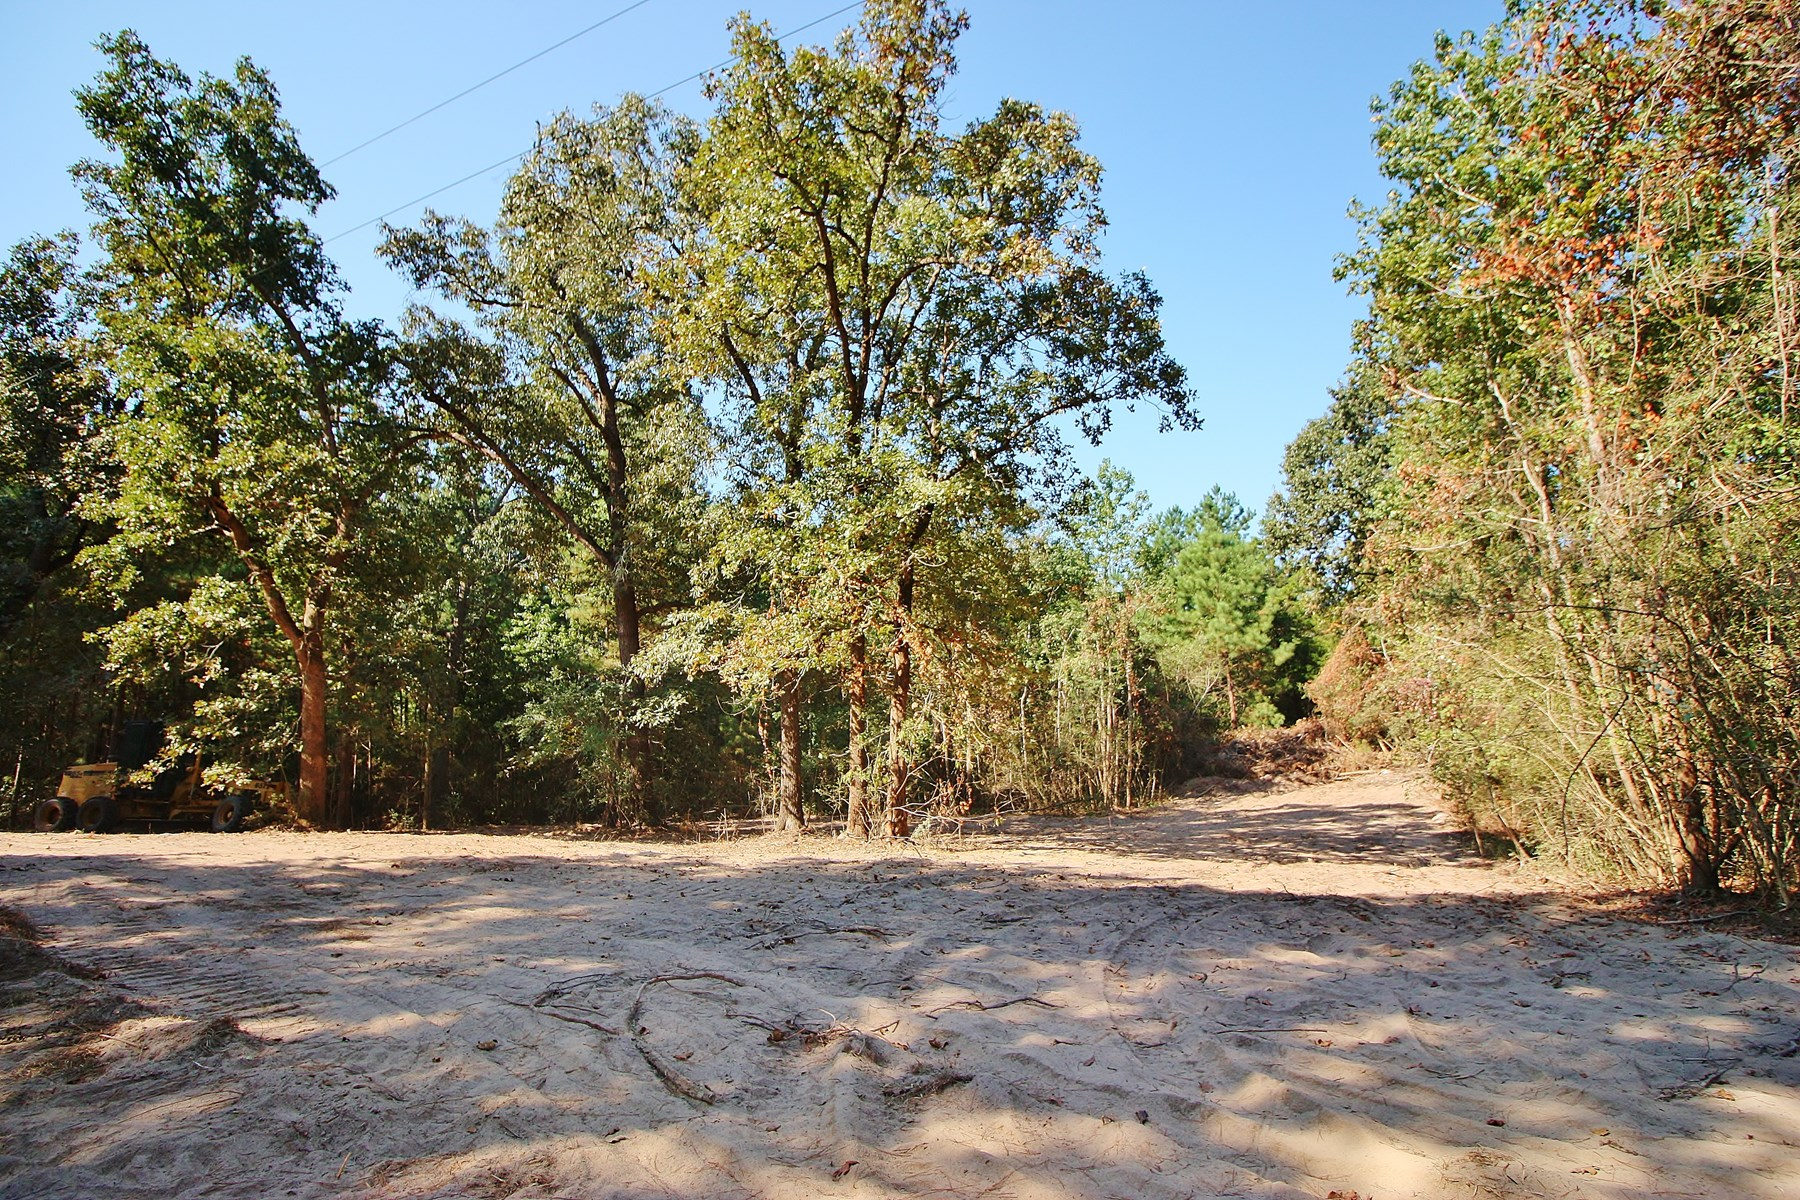 Wooded Acreage For Sale in Centerville, TX - 3.47 Acres